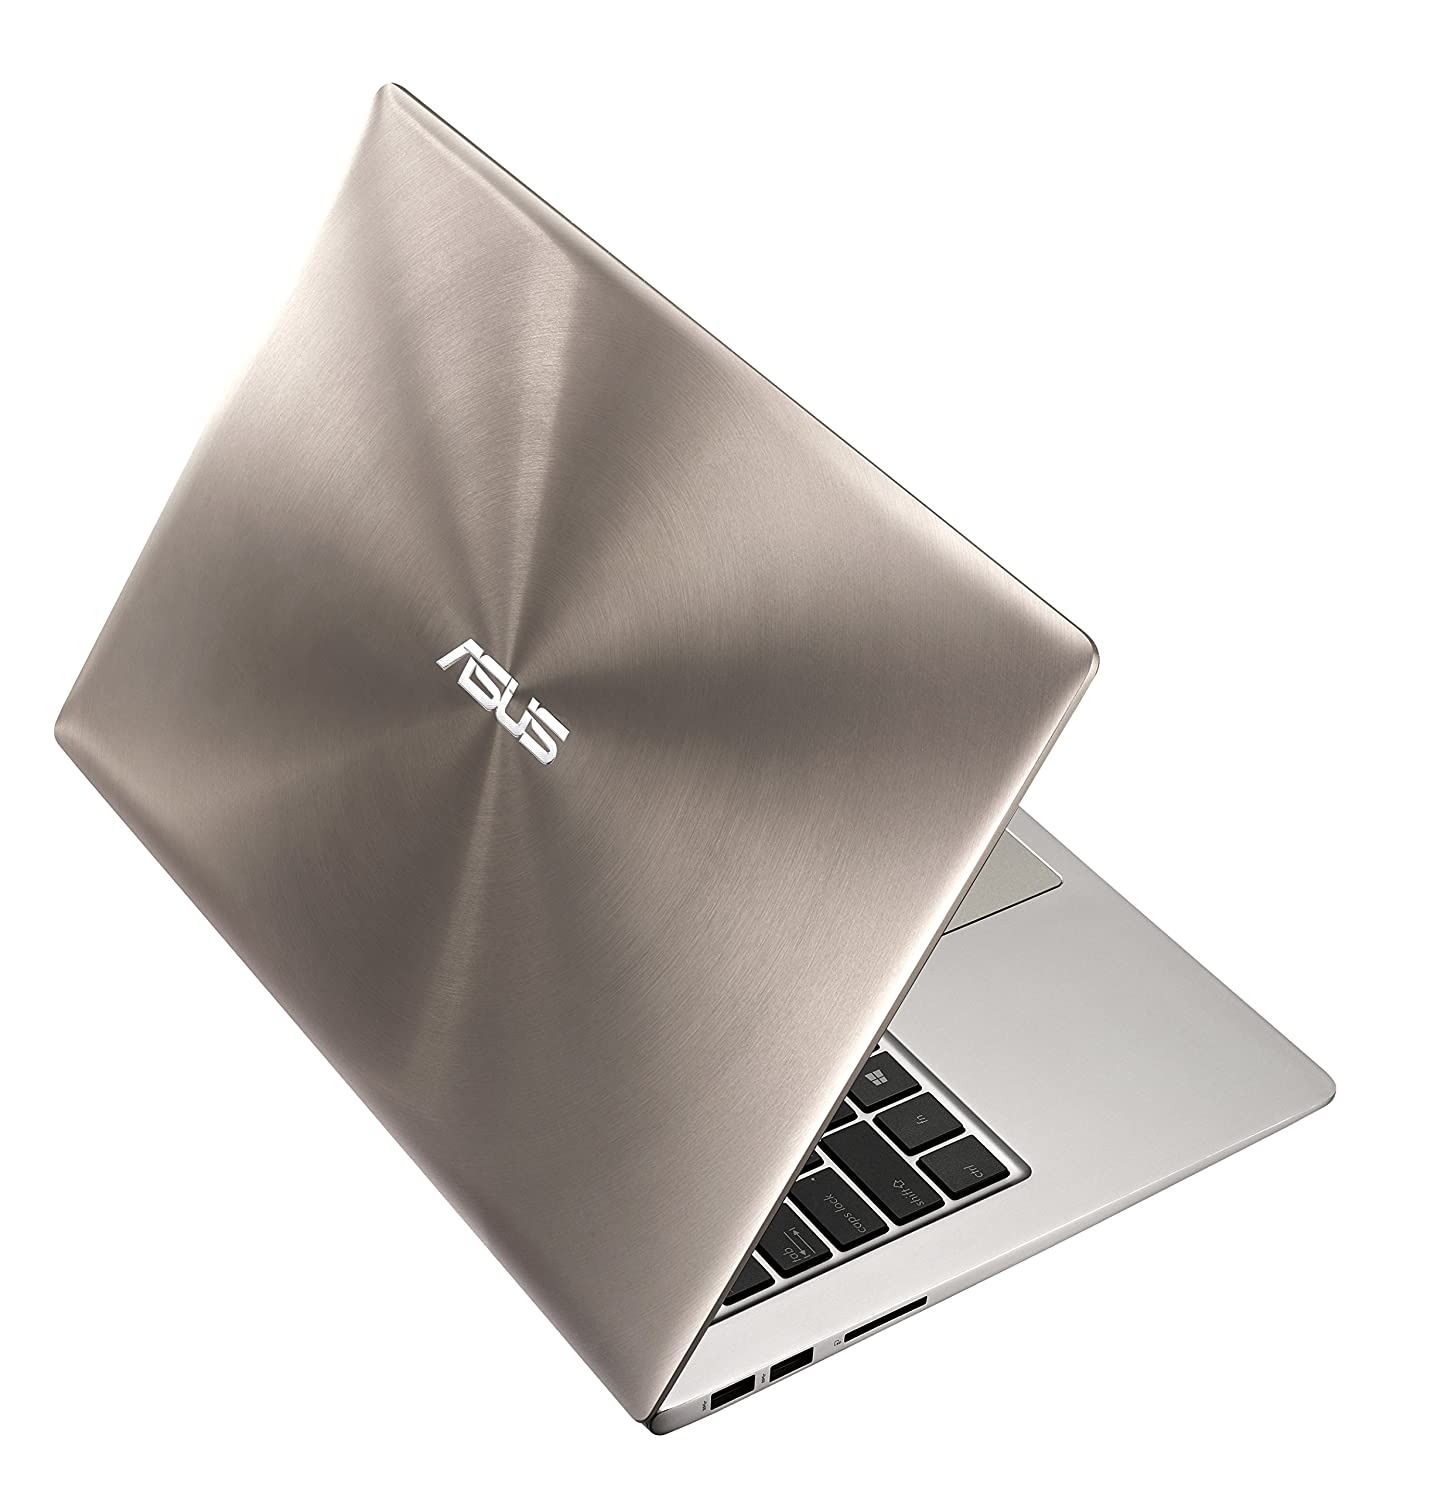 Asus Vivobook 15 6 Touch Screen Laptop 4gb Memory 500gb Hard Drive Silver Aluminum